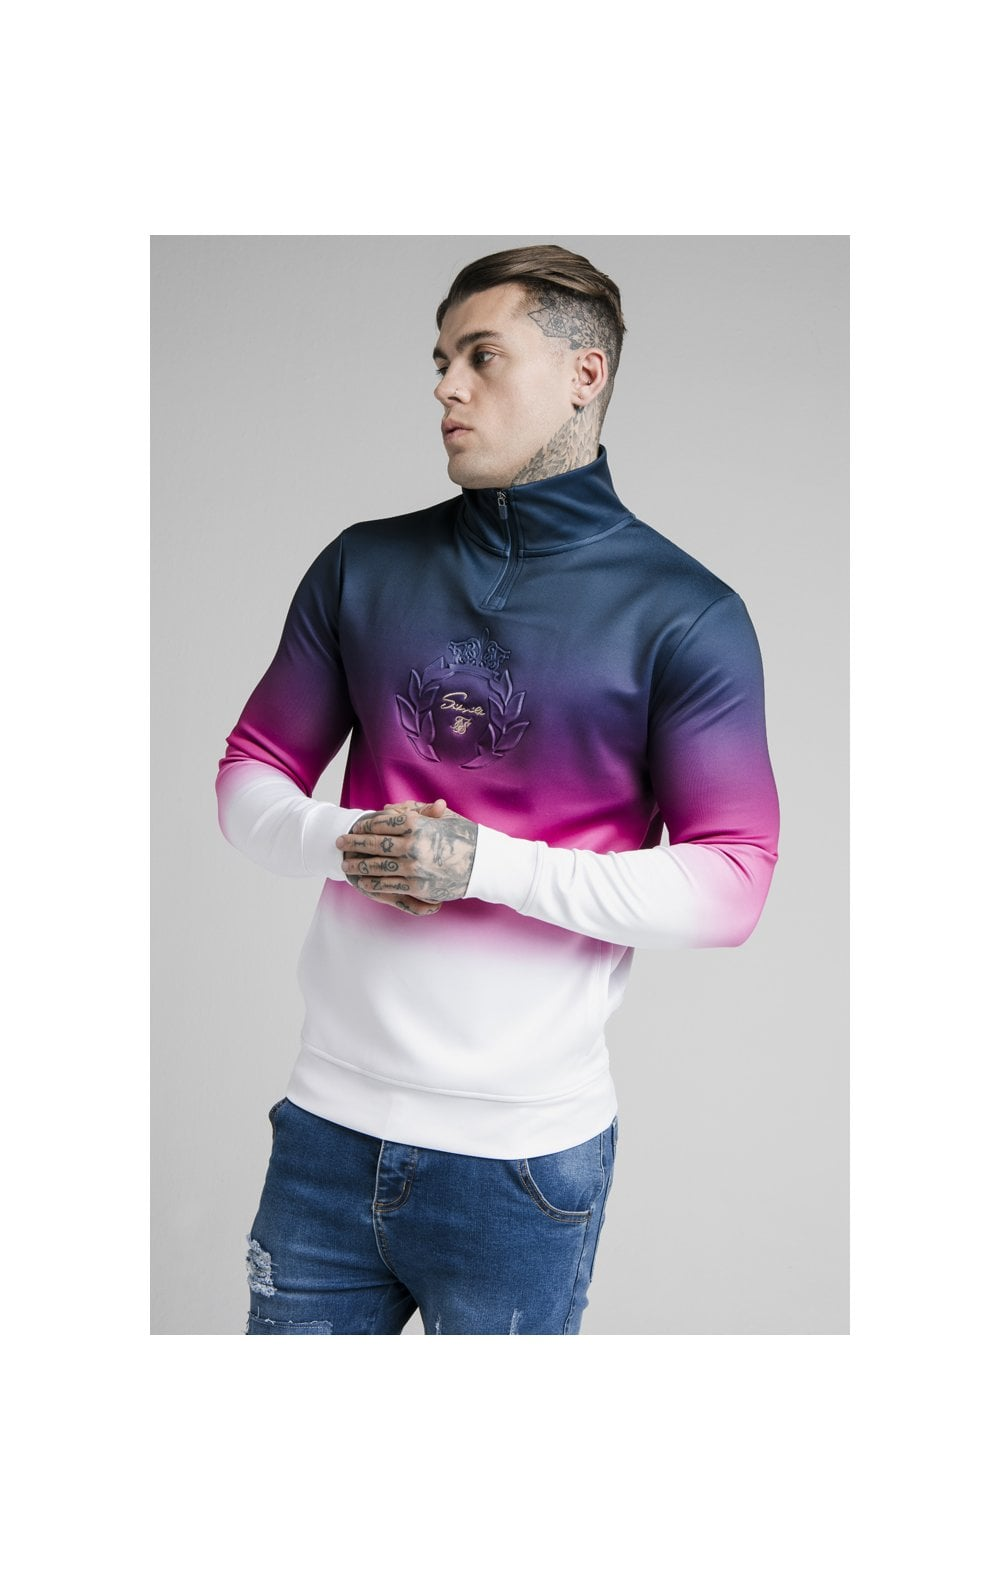 SikSilk Quarter Zip Overhead Track Top - Navy, Pink & White